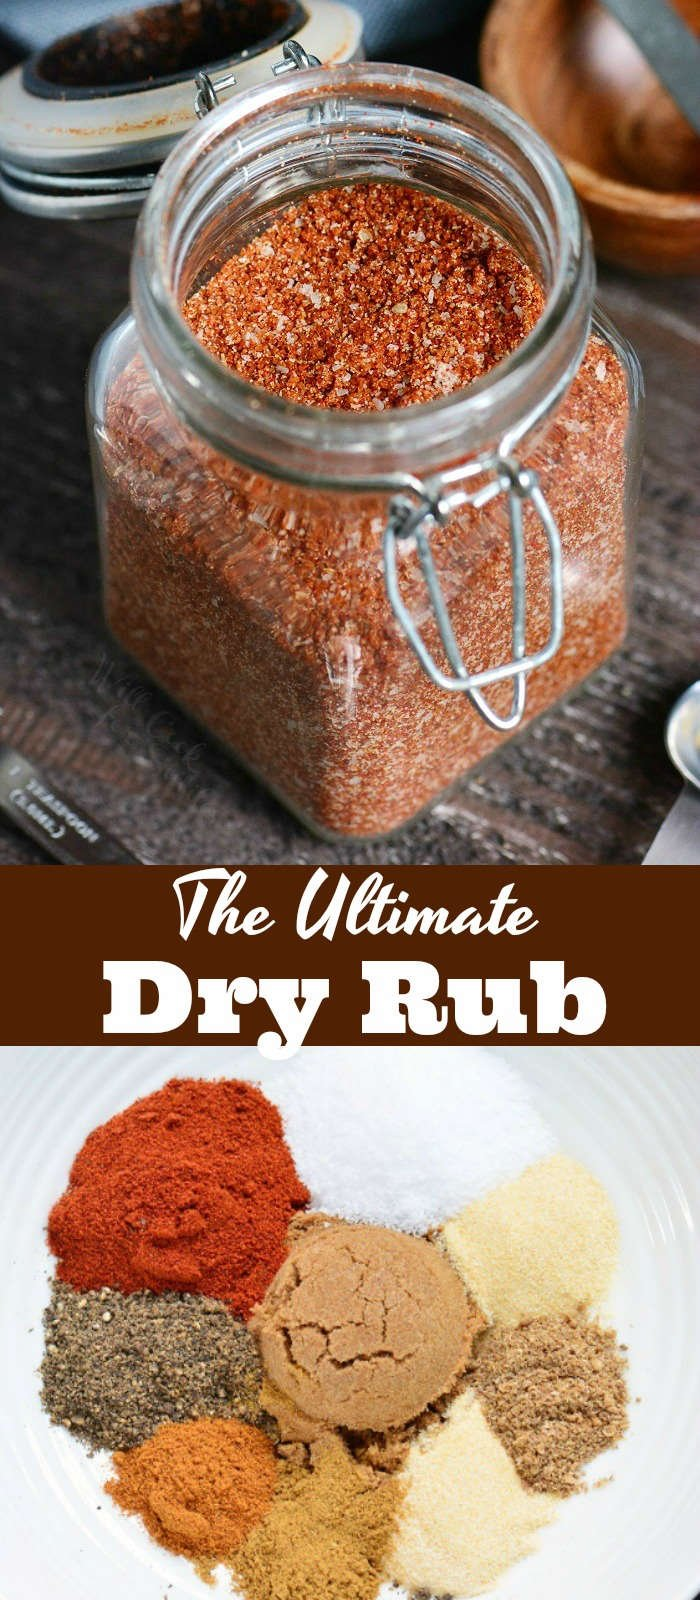 The Ultimate Dry Rub recipe picture collage top picture spices in jar bottom picture spices in a bowl